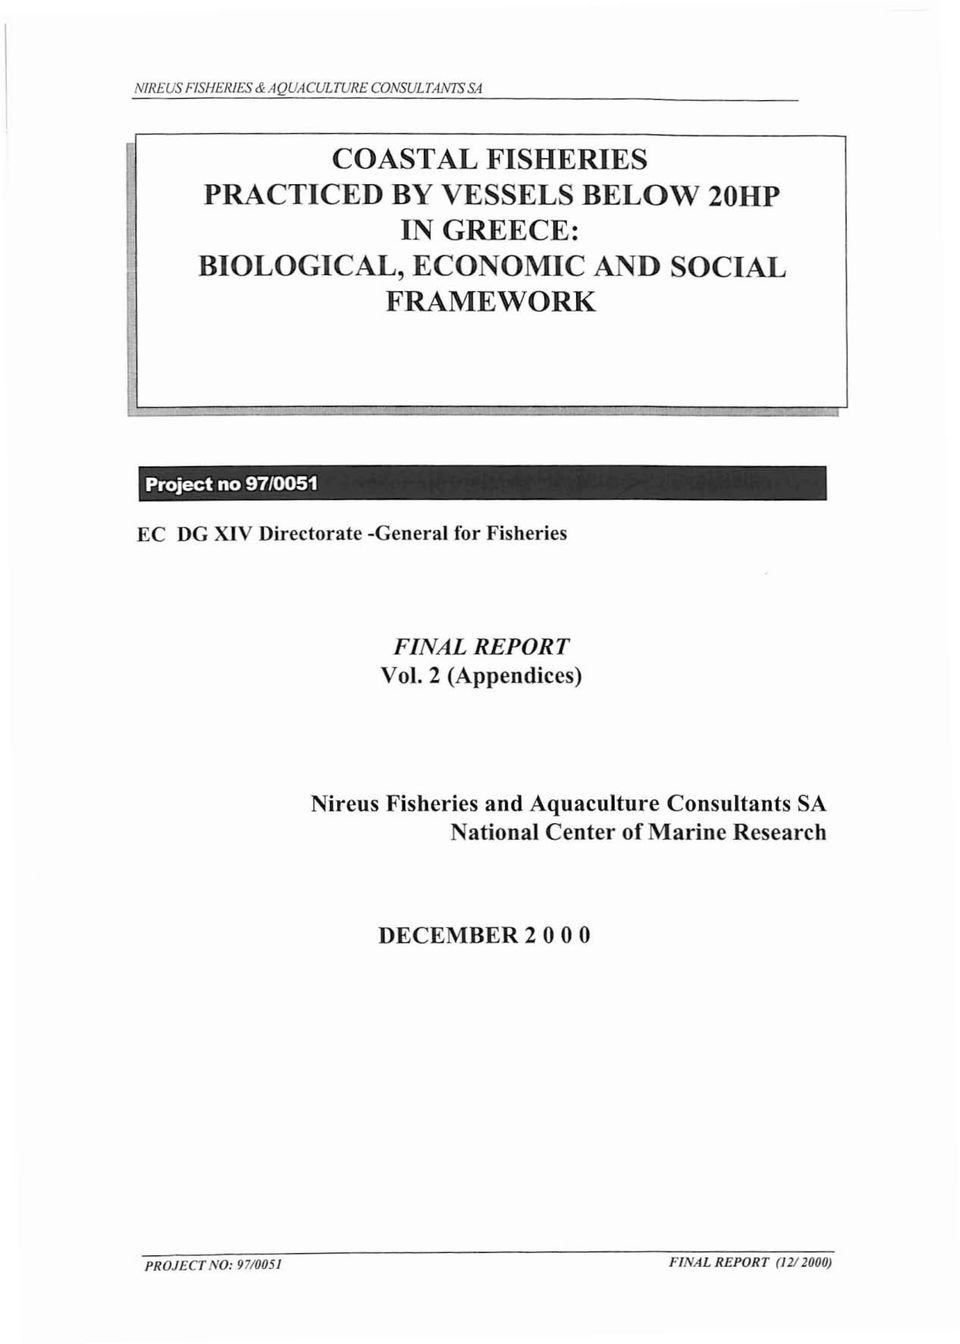 -General for Fisheries FINAL REPORT νοι 2 (Appendices) Nireus Fisheries and Aquaculture